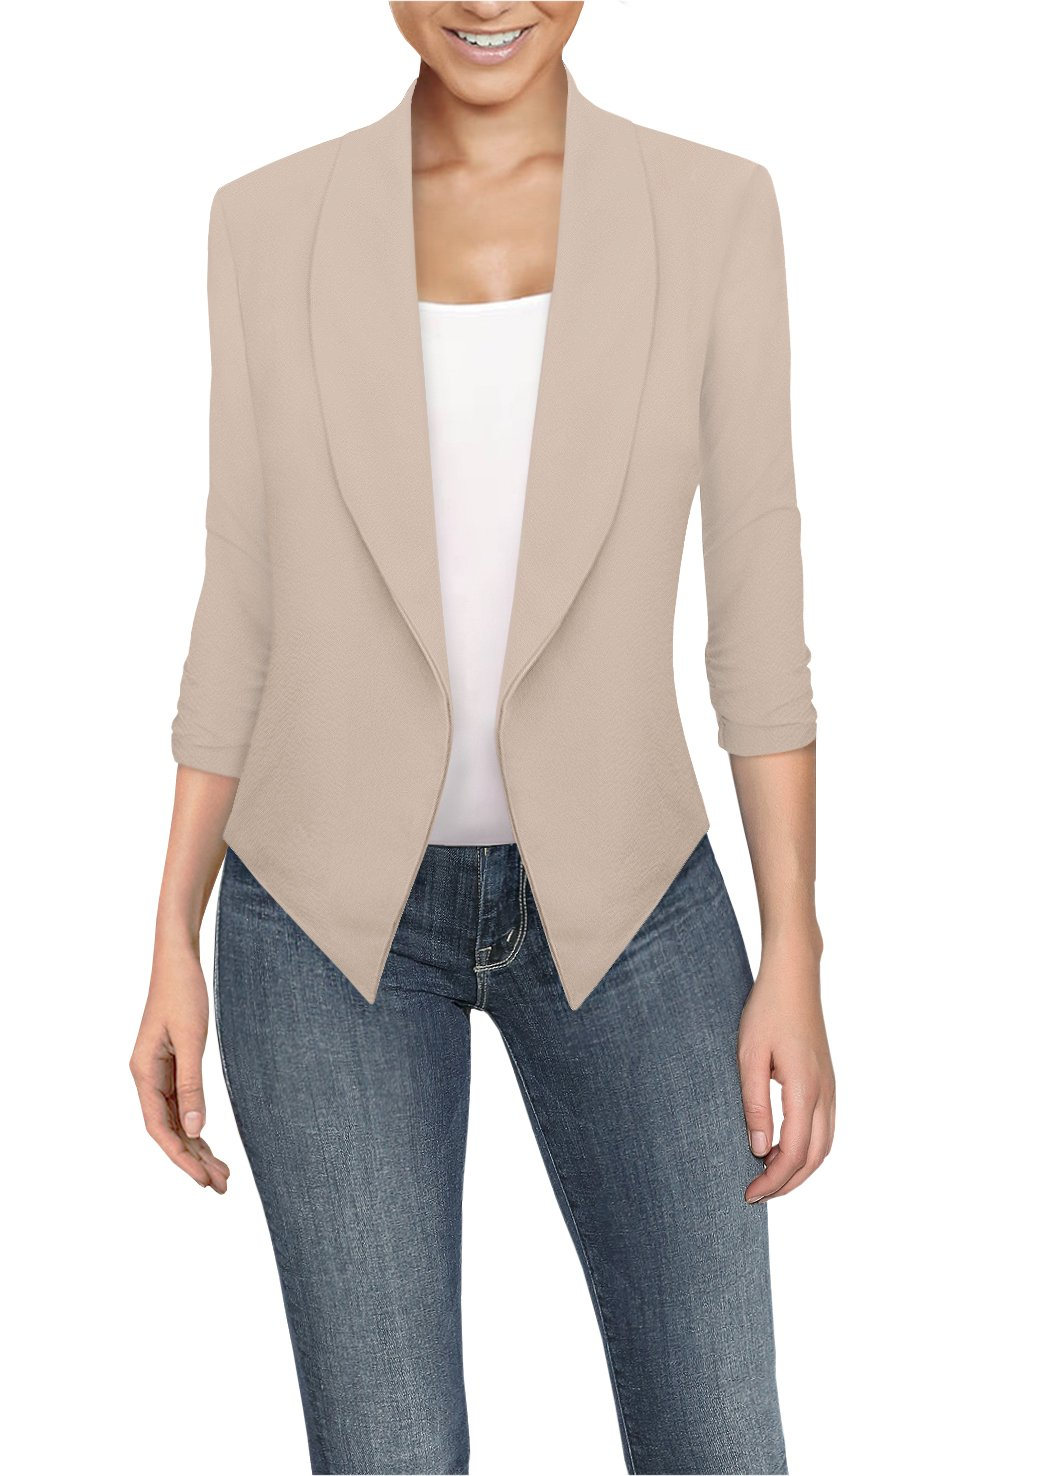 HyBrid & Company Womens Casual Work Office Open Front Blazer JK1133X Stone 2X